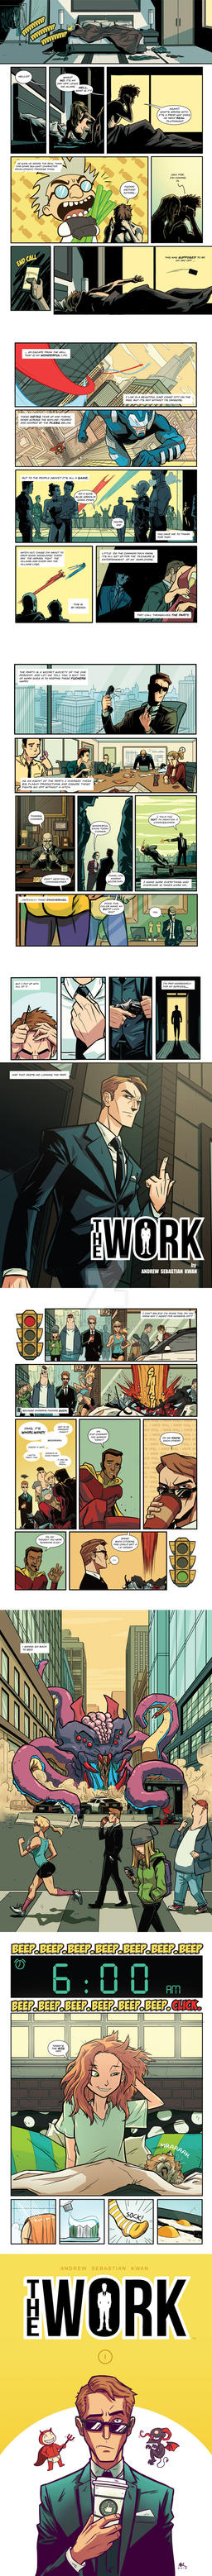 THE WORK Teaser Pages by AndrewKwan